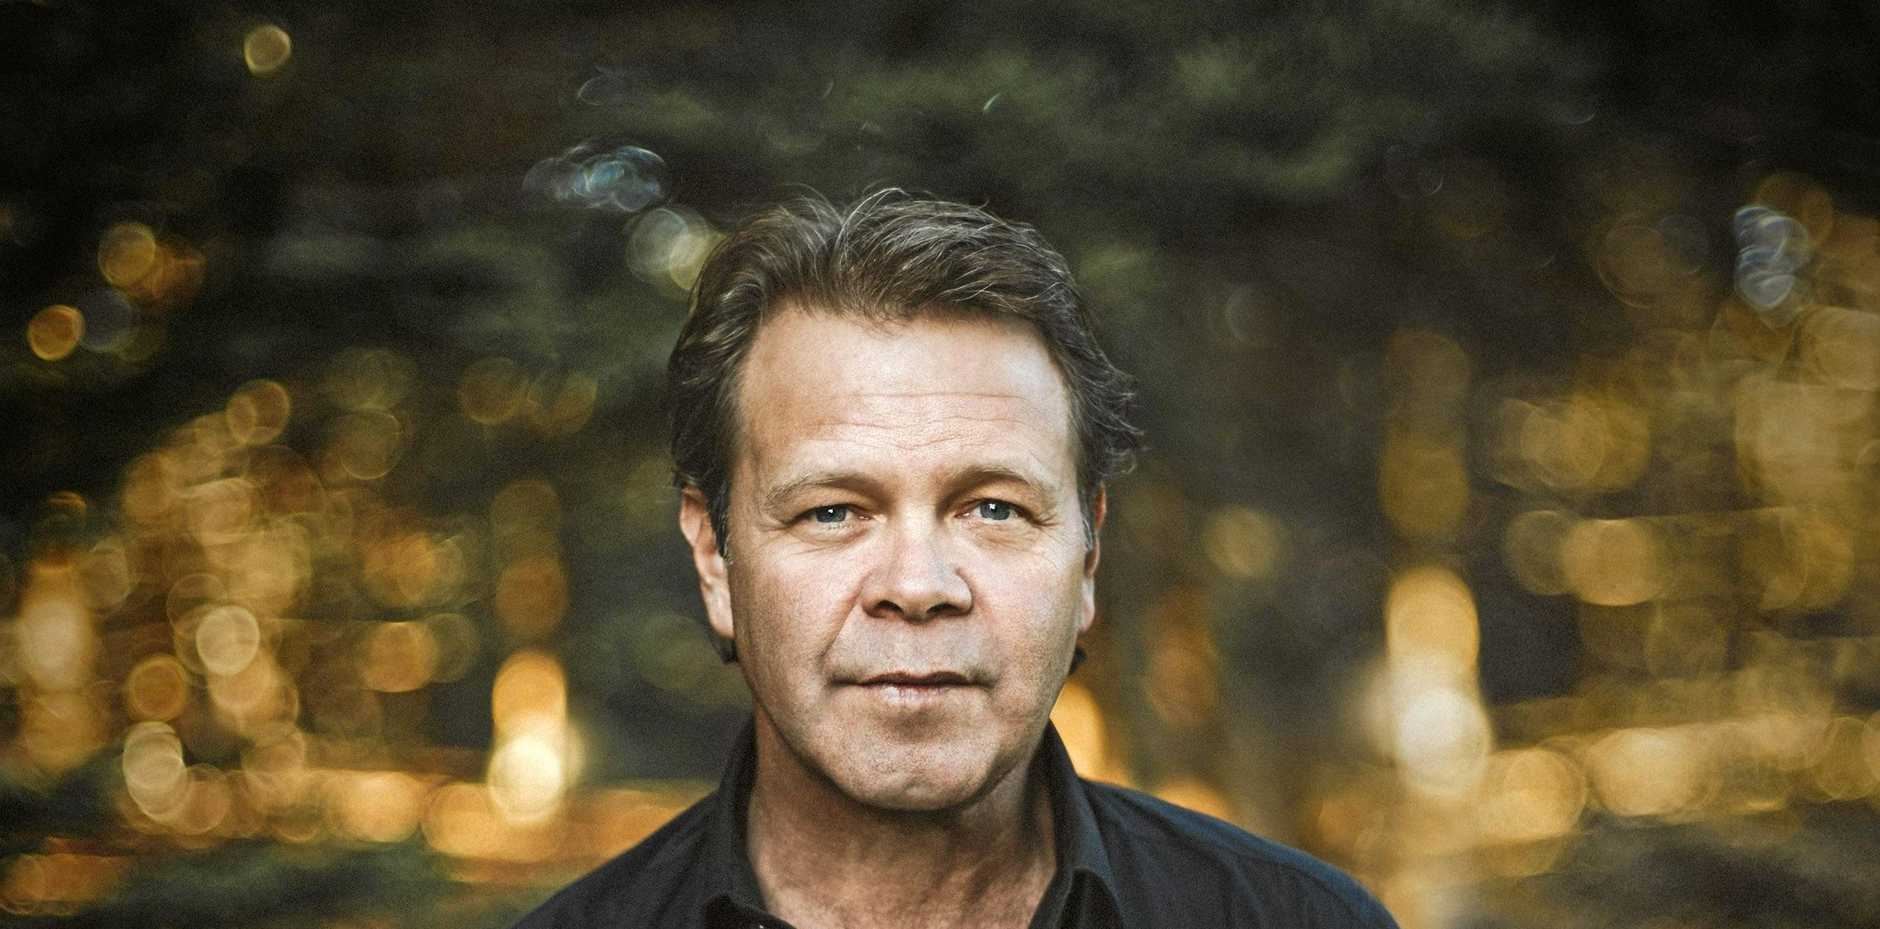 TROY Cassar-Daley heads to the Casino RSM on Saturday, March 23. Troy has come a long way from the twelve-year-old boy from Grafton busking on Peel Street at the Tamworth Country Music Festival.